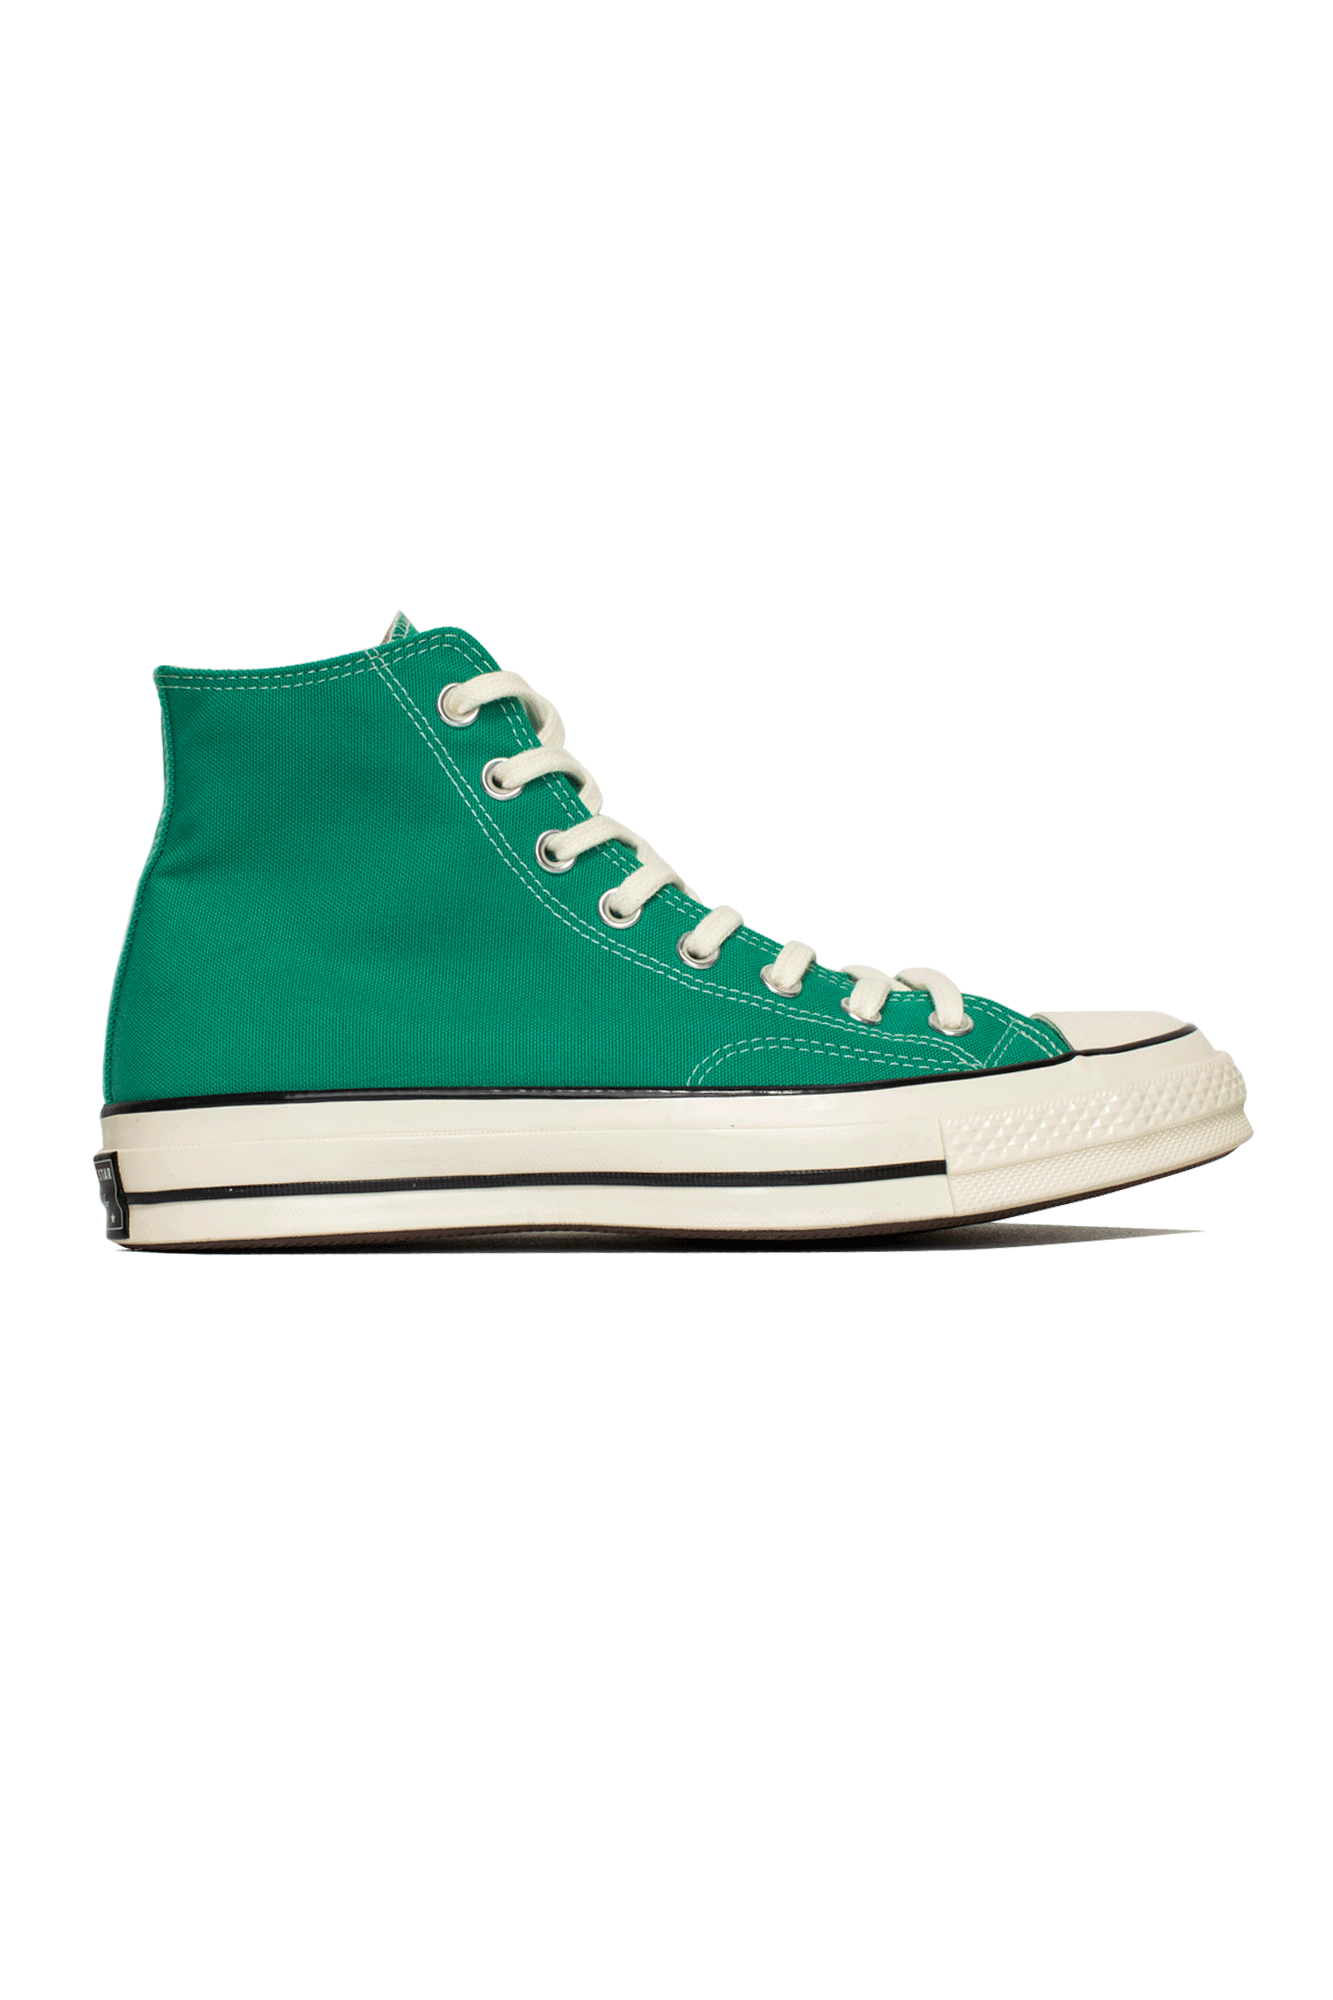 Chuck 70 Recycled Canvas Verde